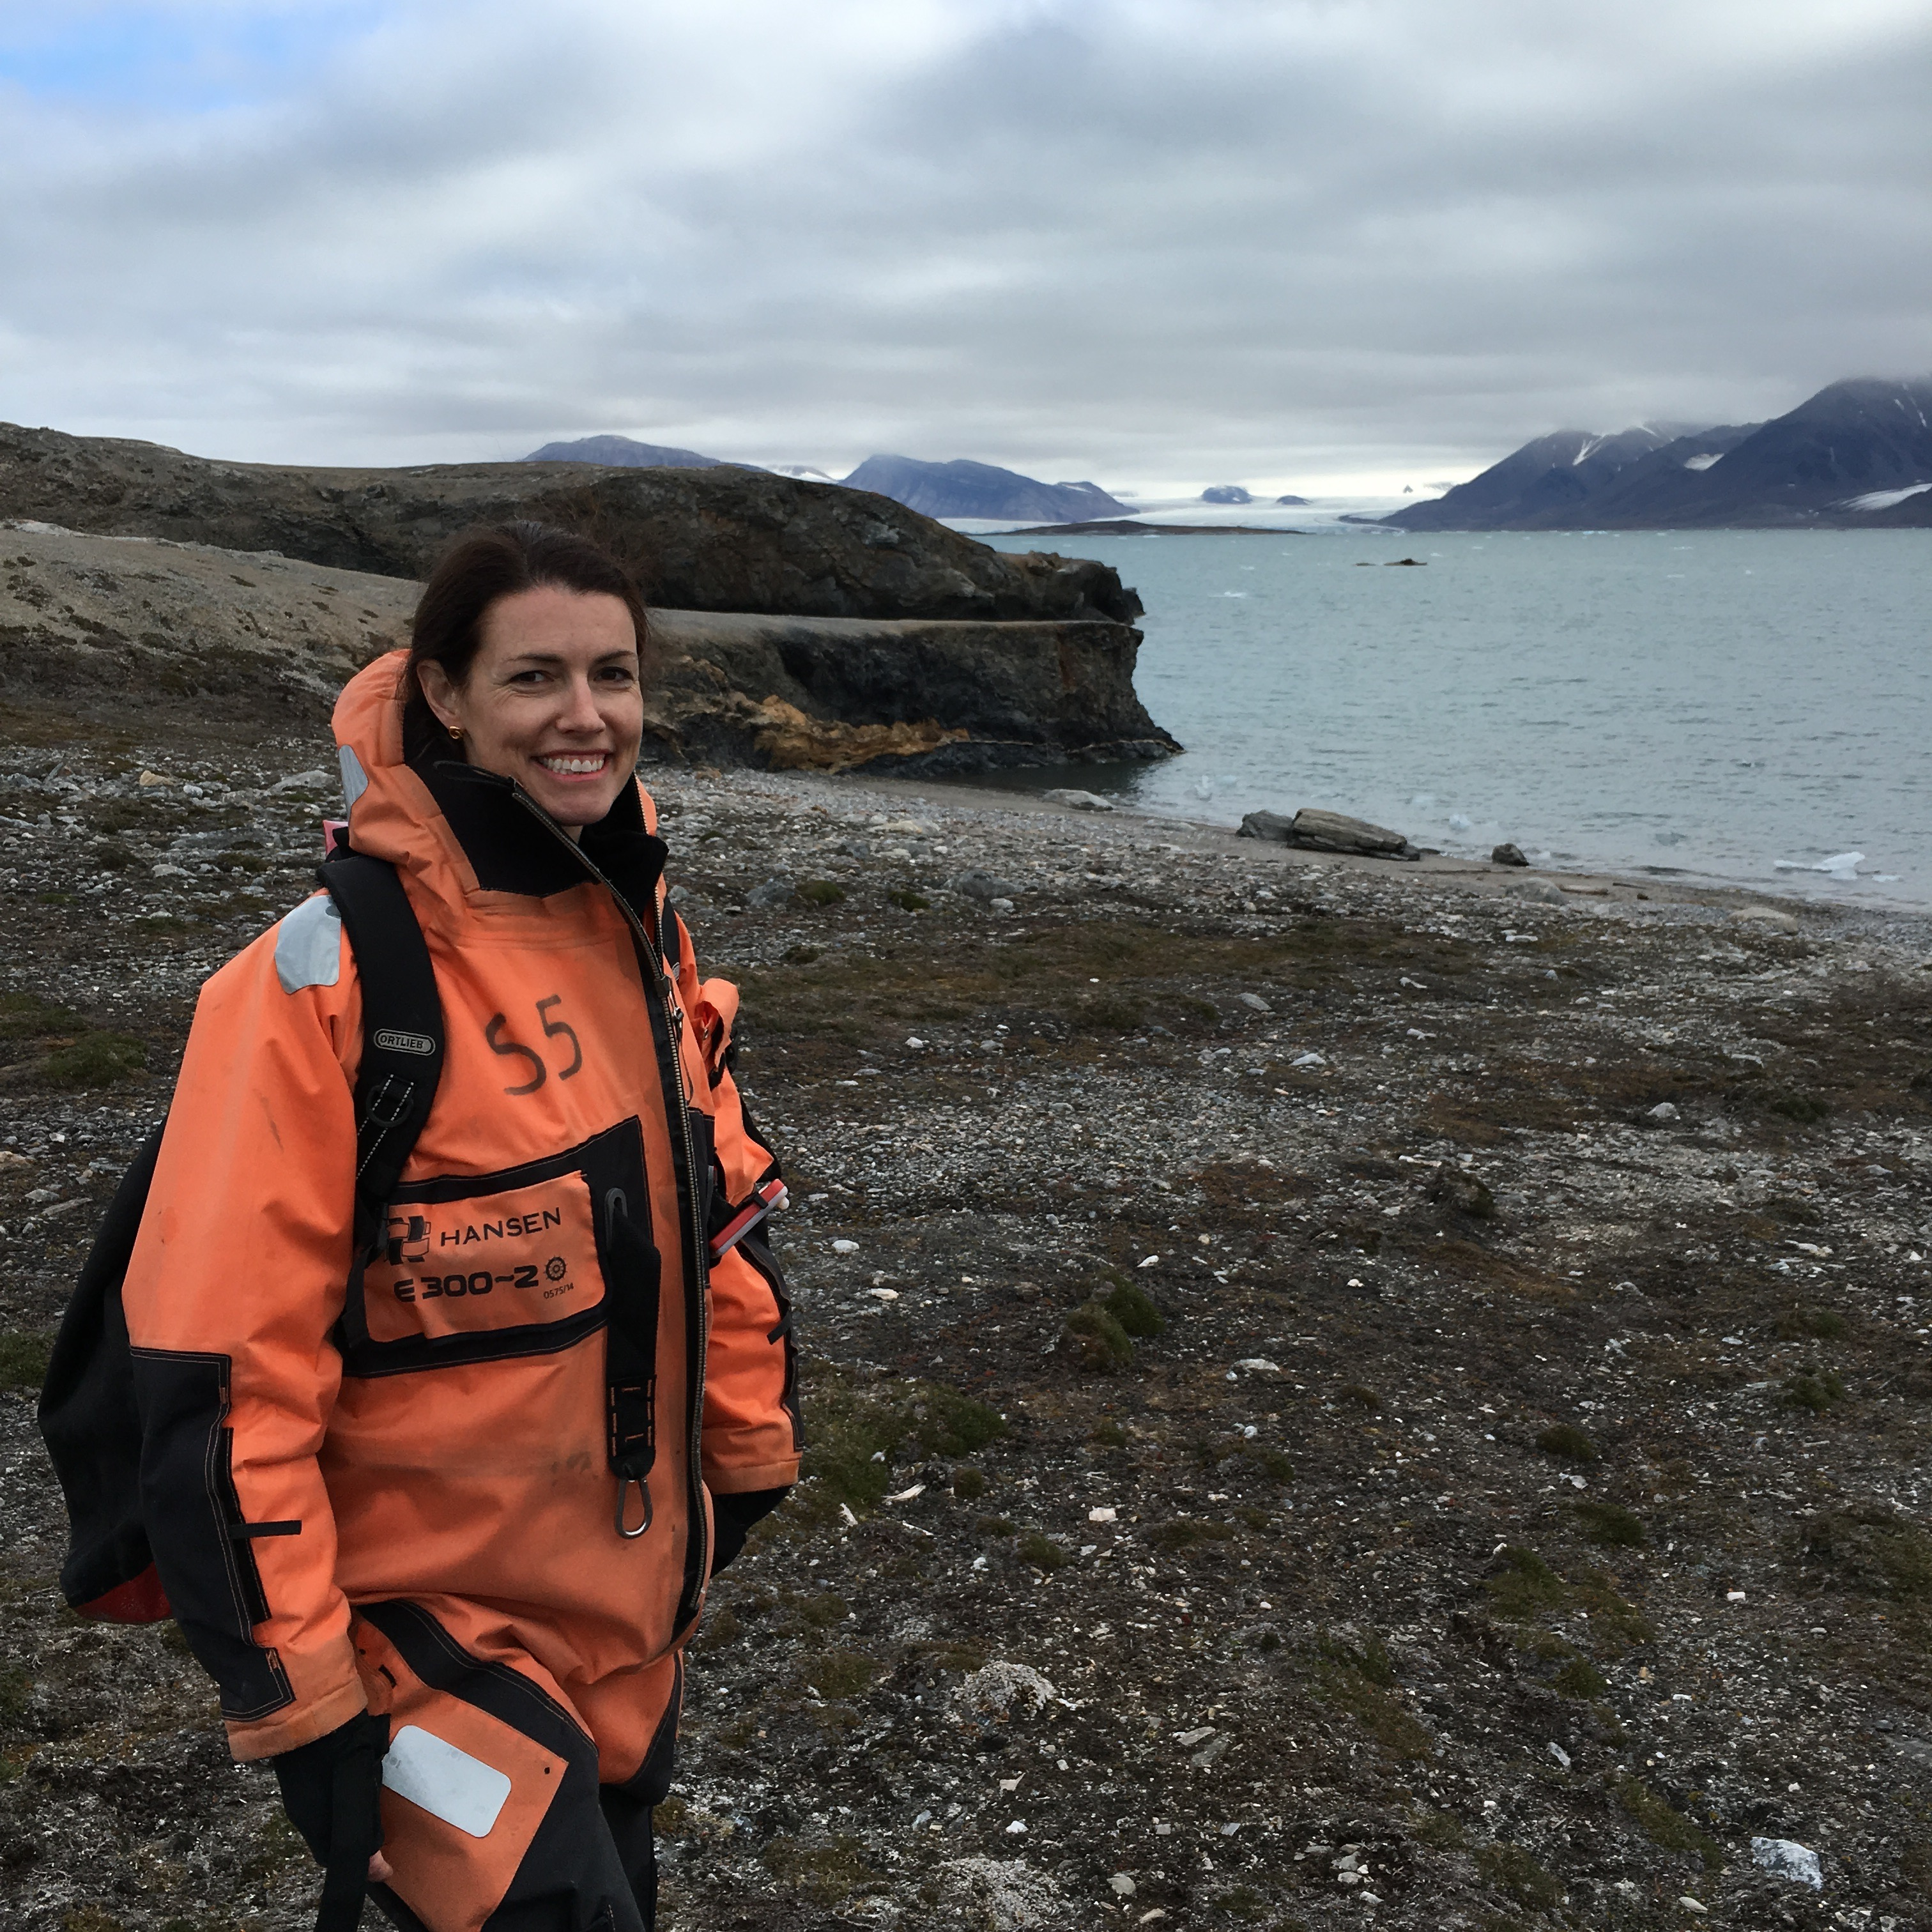 Microbiologist Seeks Microbes in their Inhospitable Habitats | American Association for the Advancement of Science